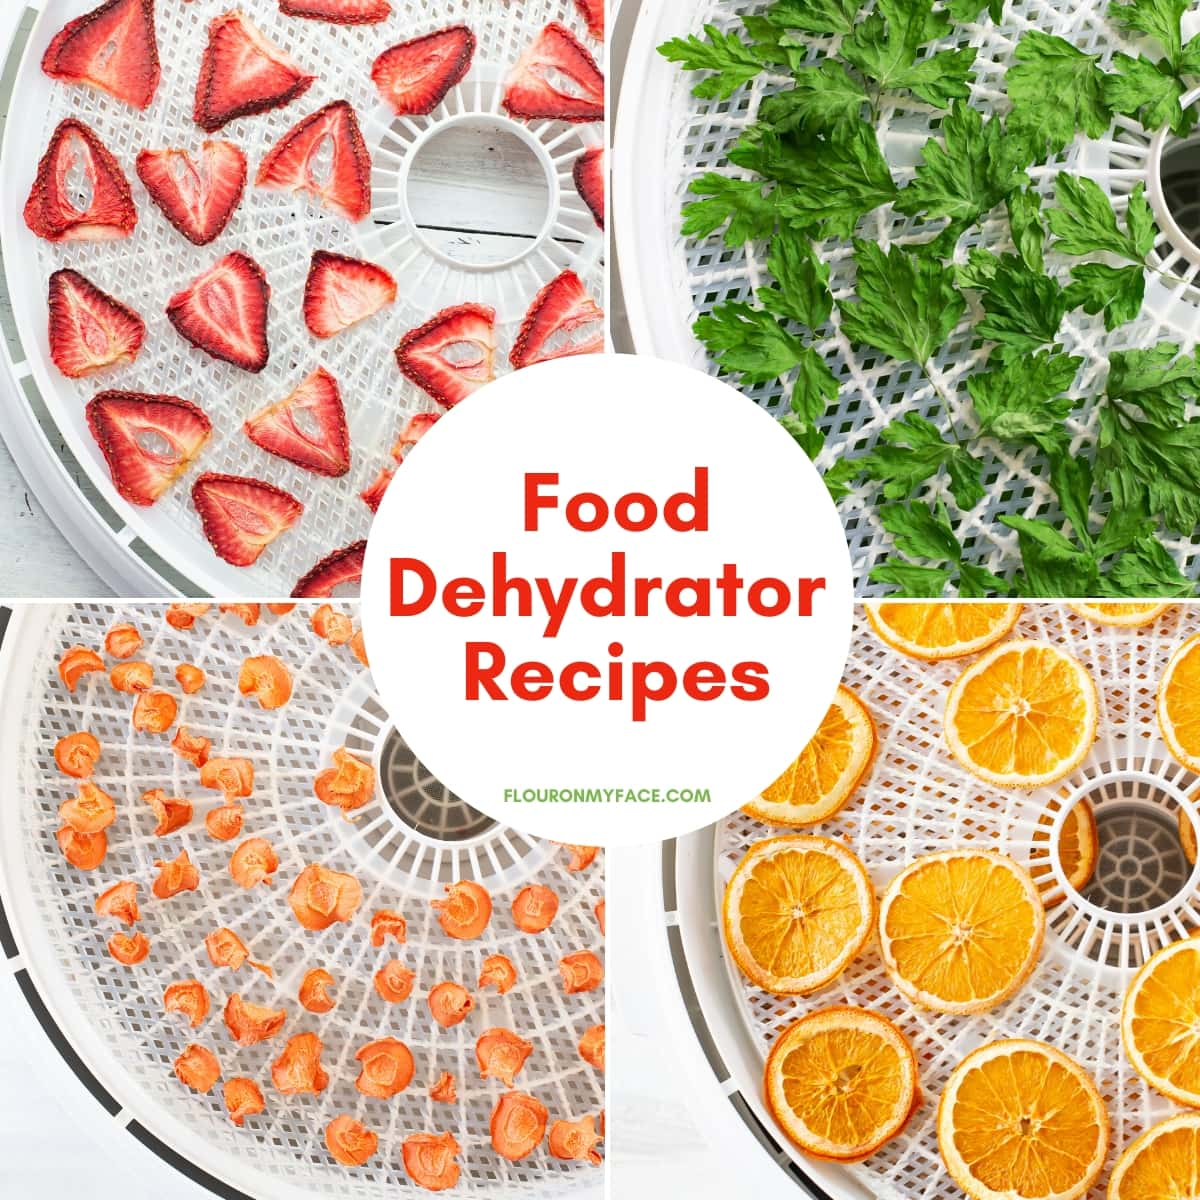 featured food dehydrator recipes page image